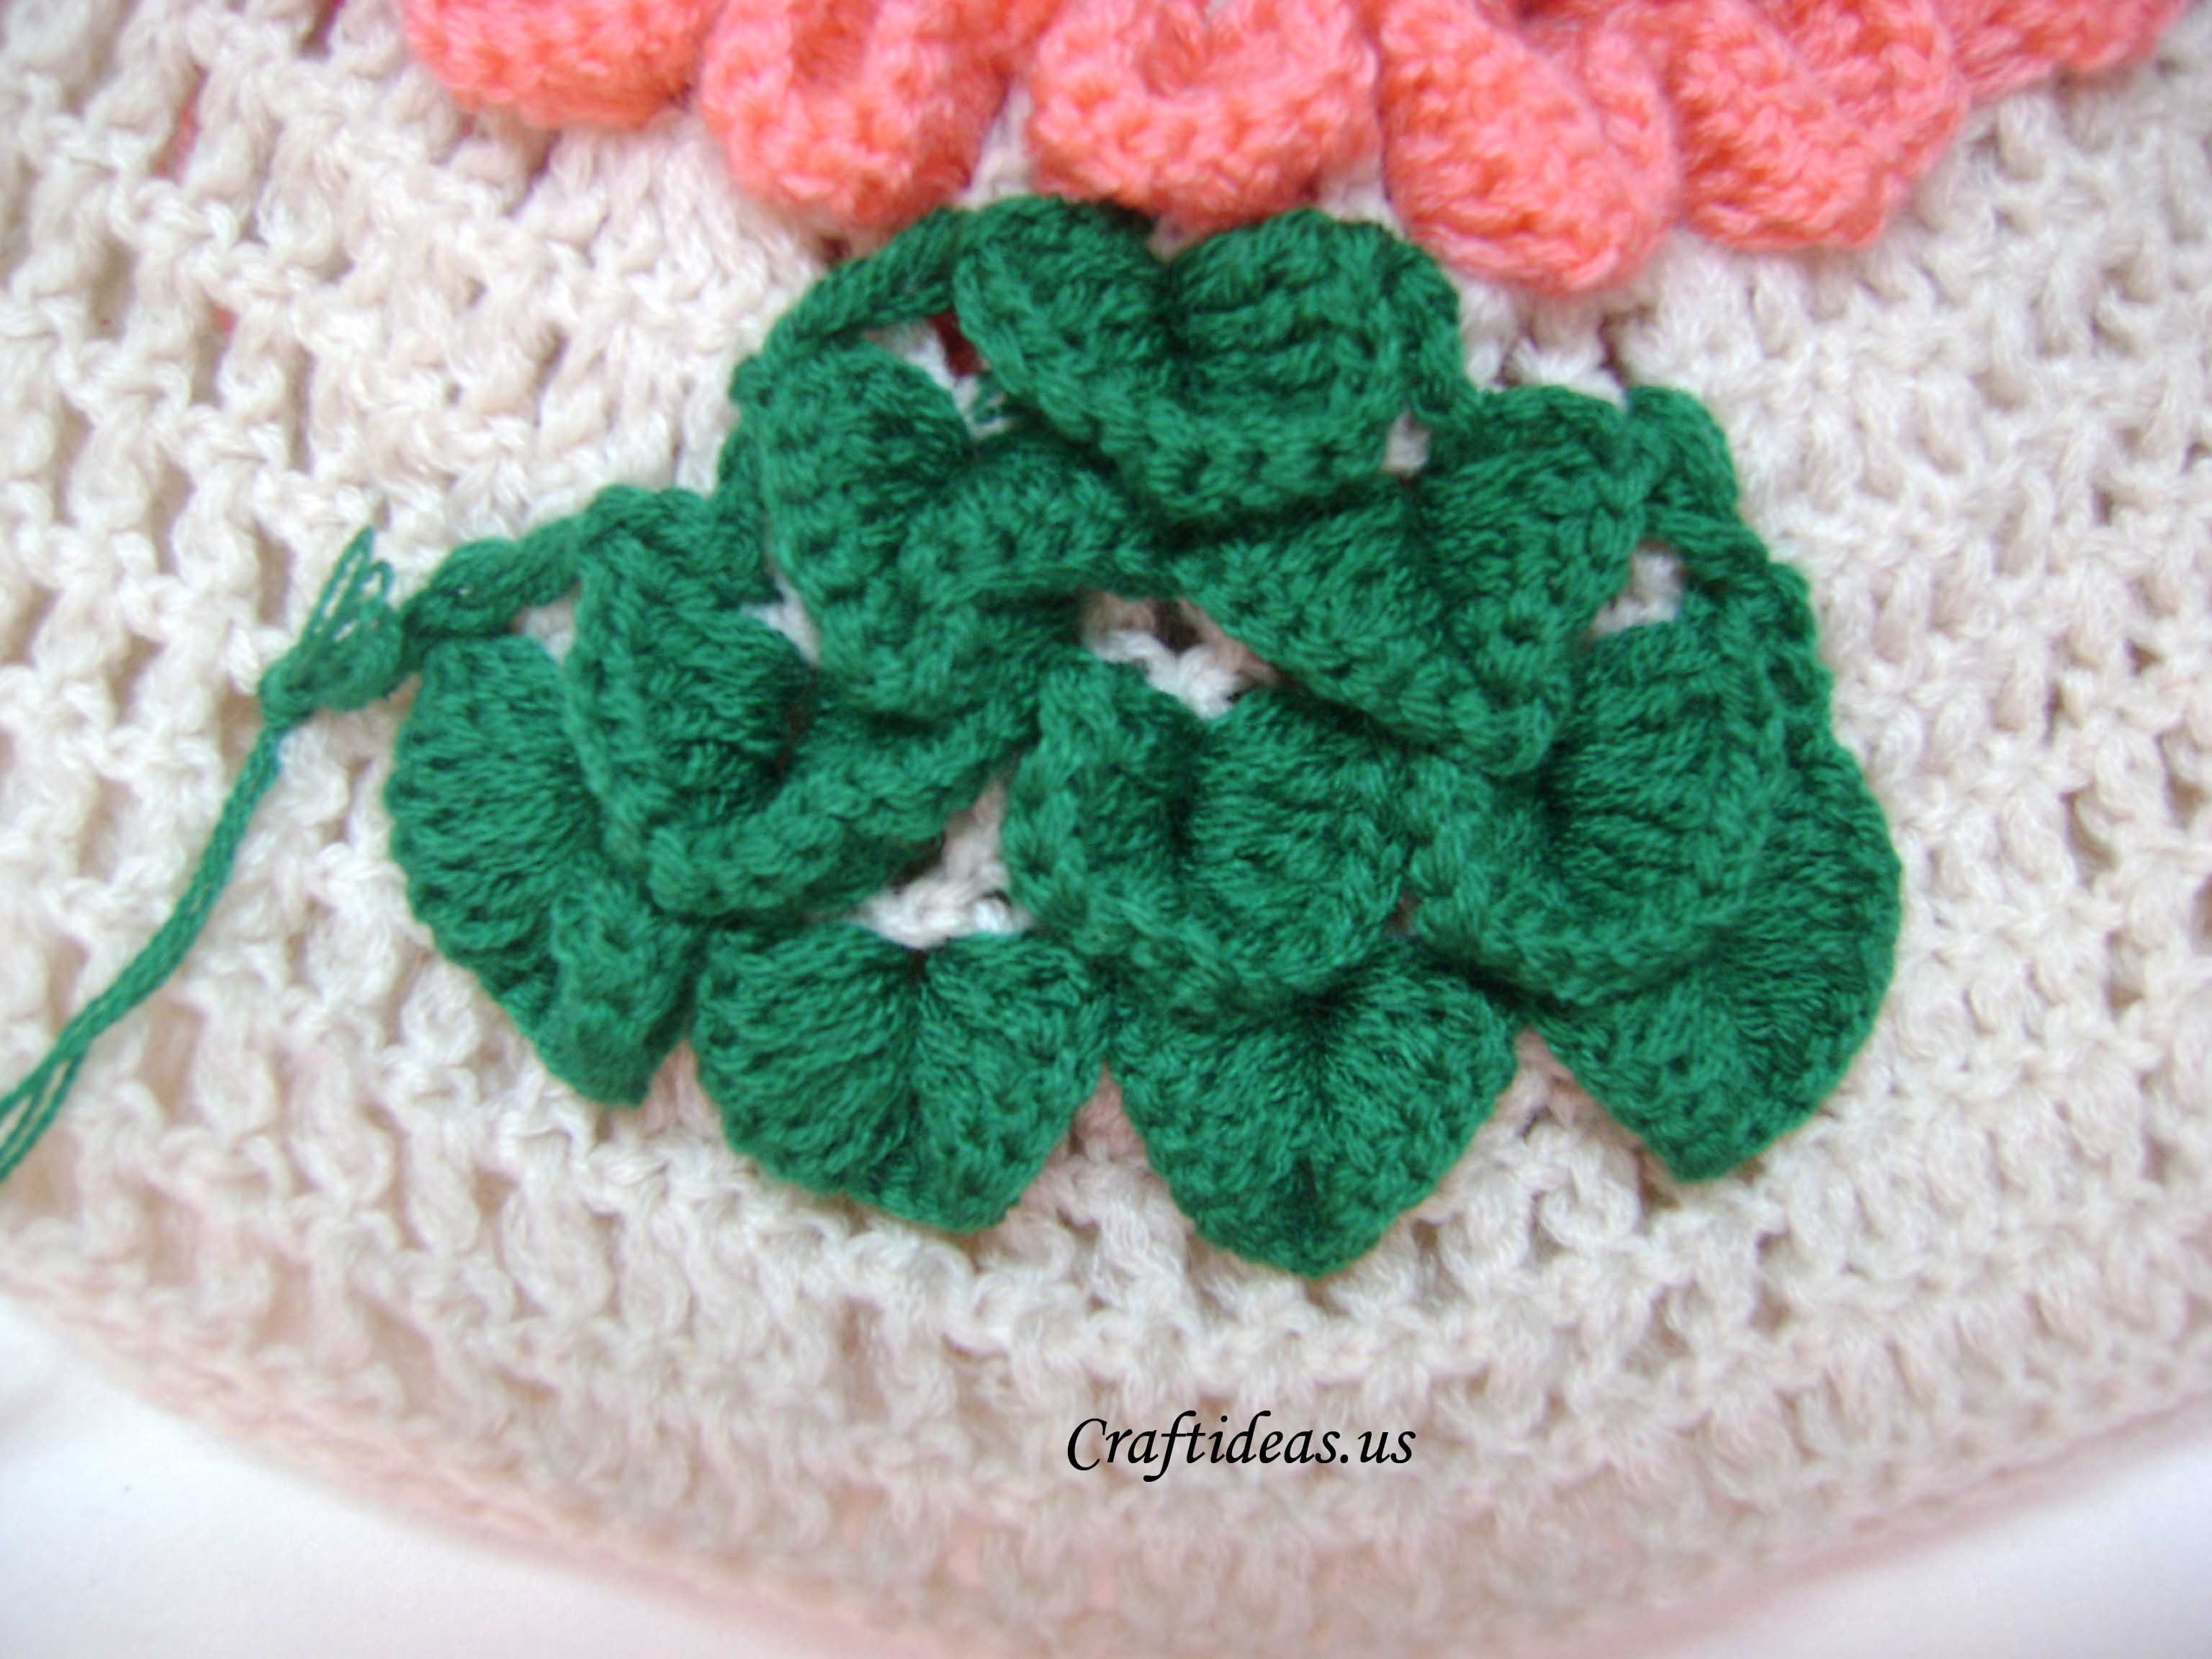 Crocheting Crafts : Christmas Craft Ideas Crocheted Beauty Snowflake Tutorial Make ...